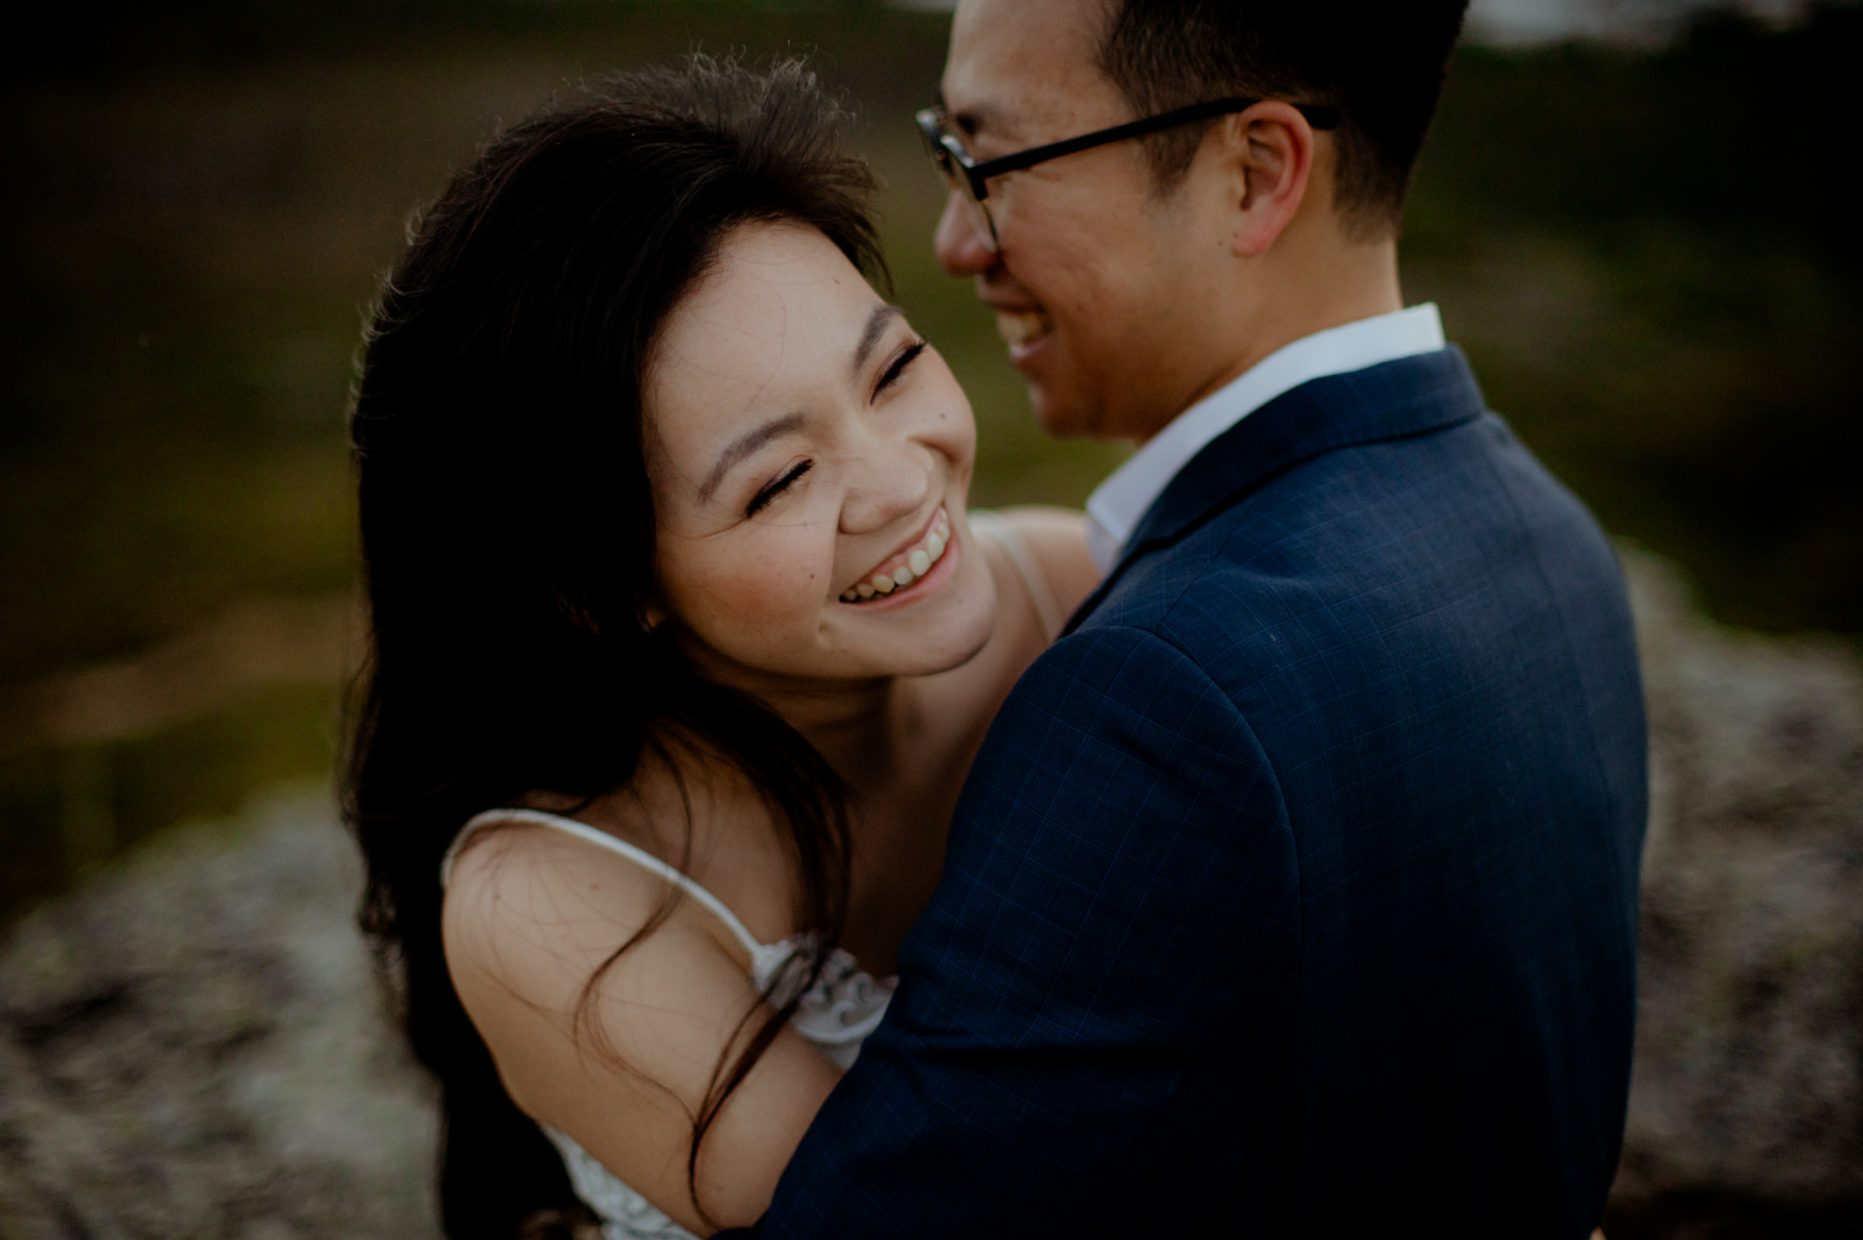 An asian woman in a white dress smiles and laughs as a man in a suit and glasses hugs her